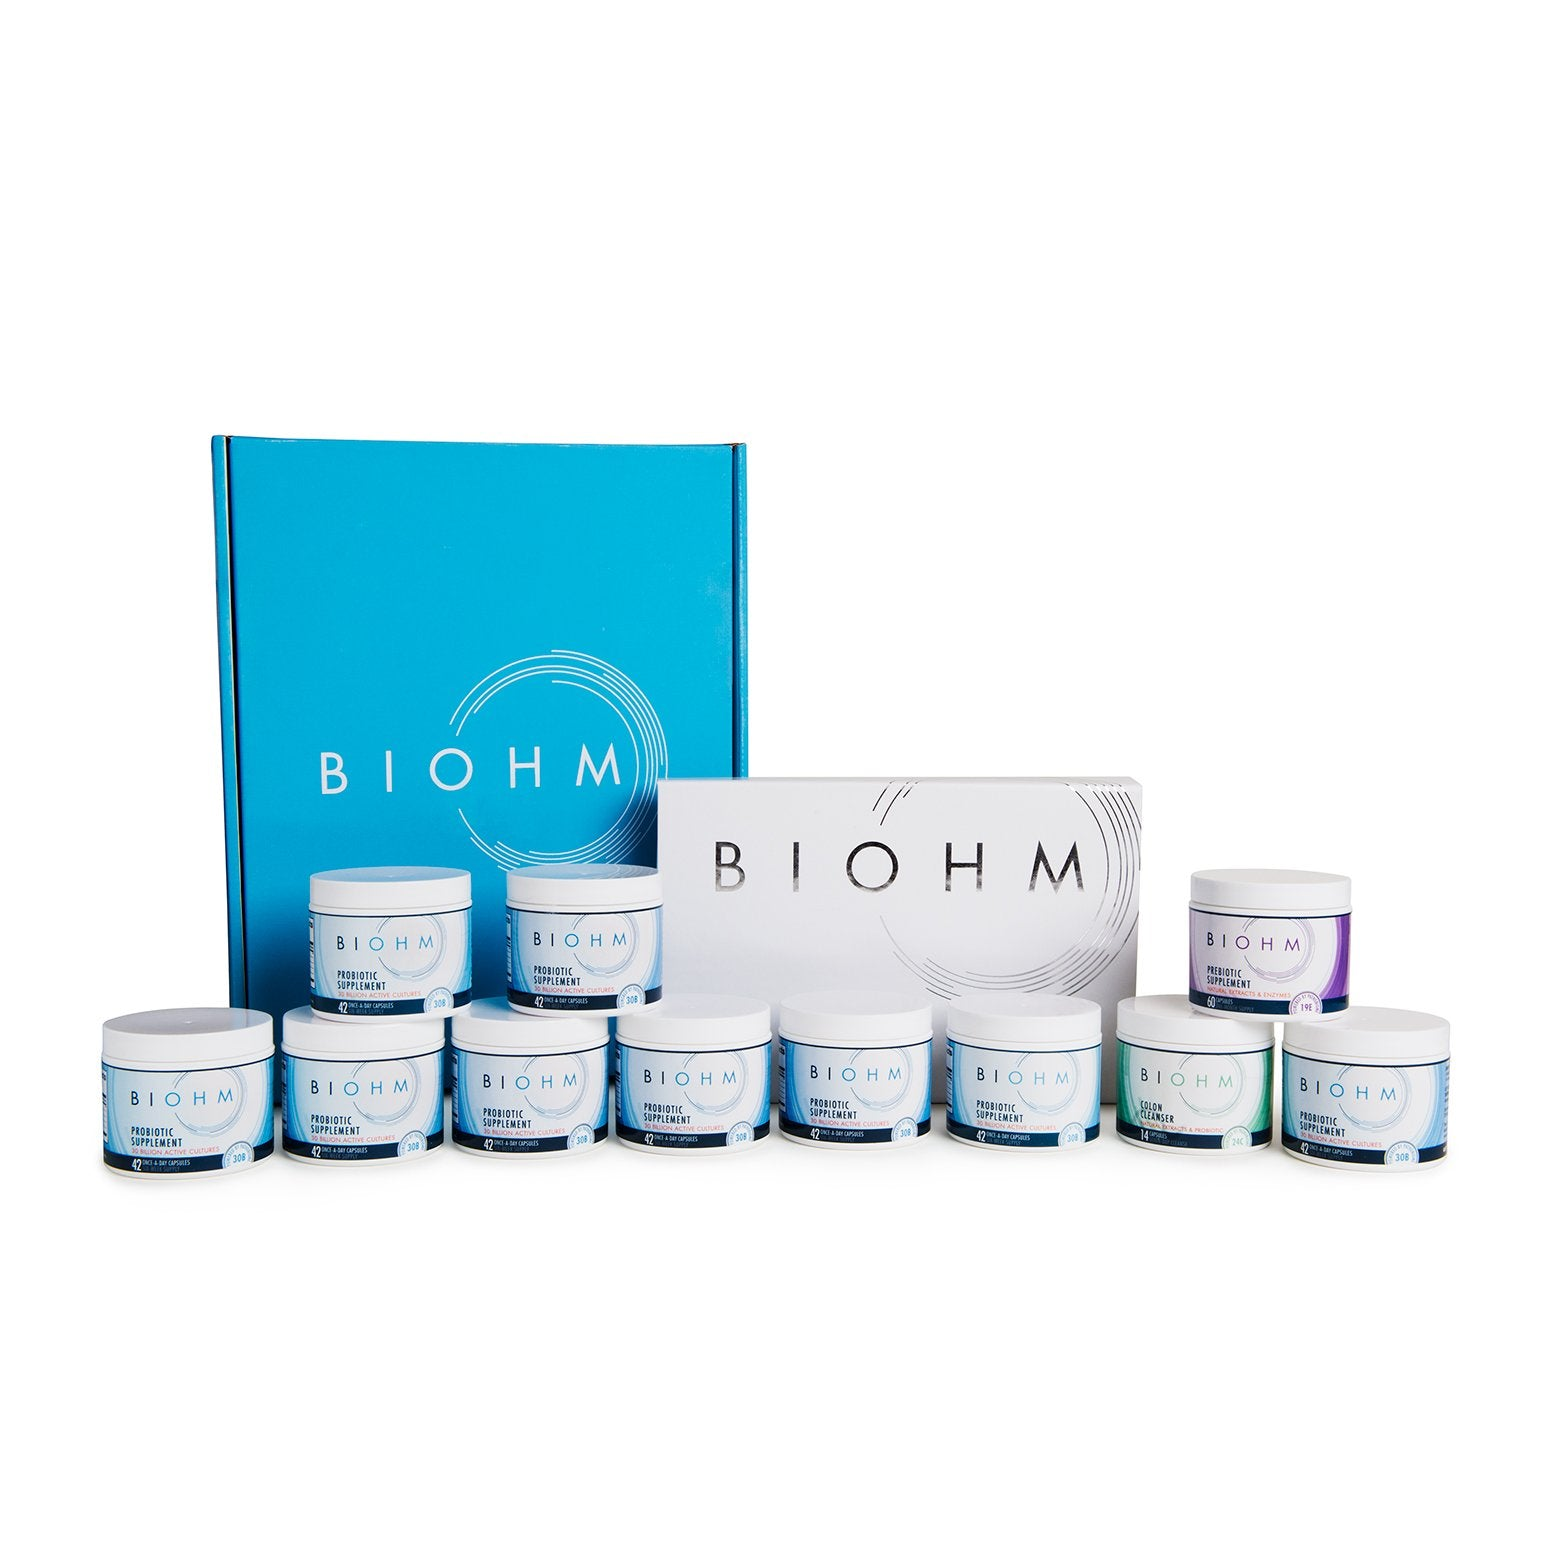 BIOHM Annual Shipper Products (Annual Subscriptions)